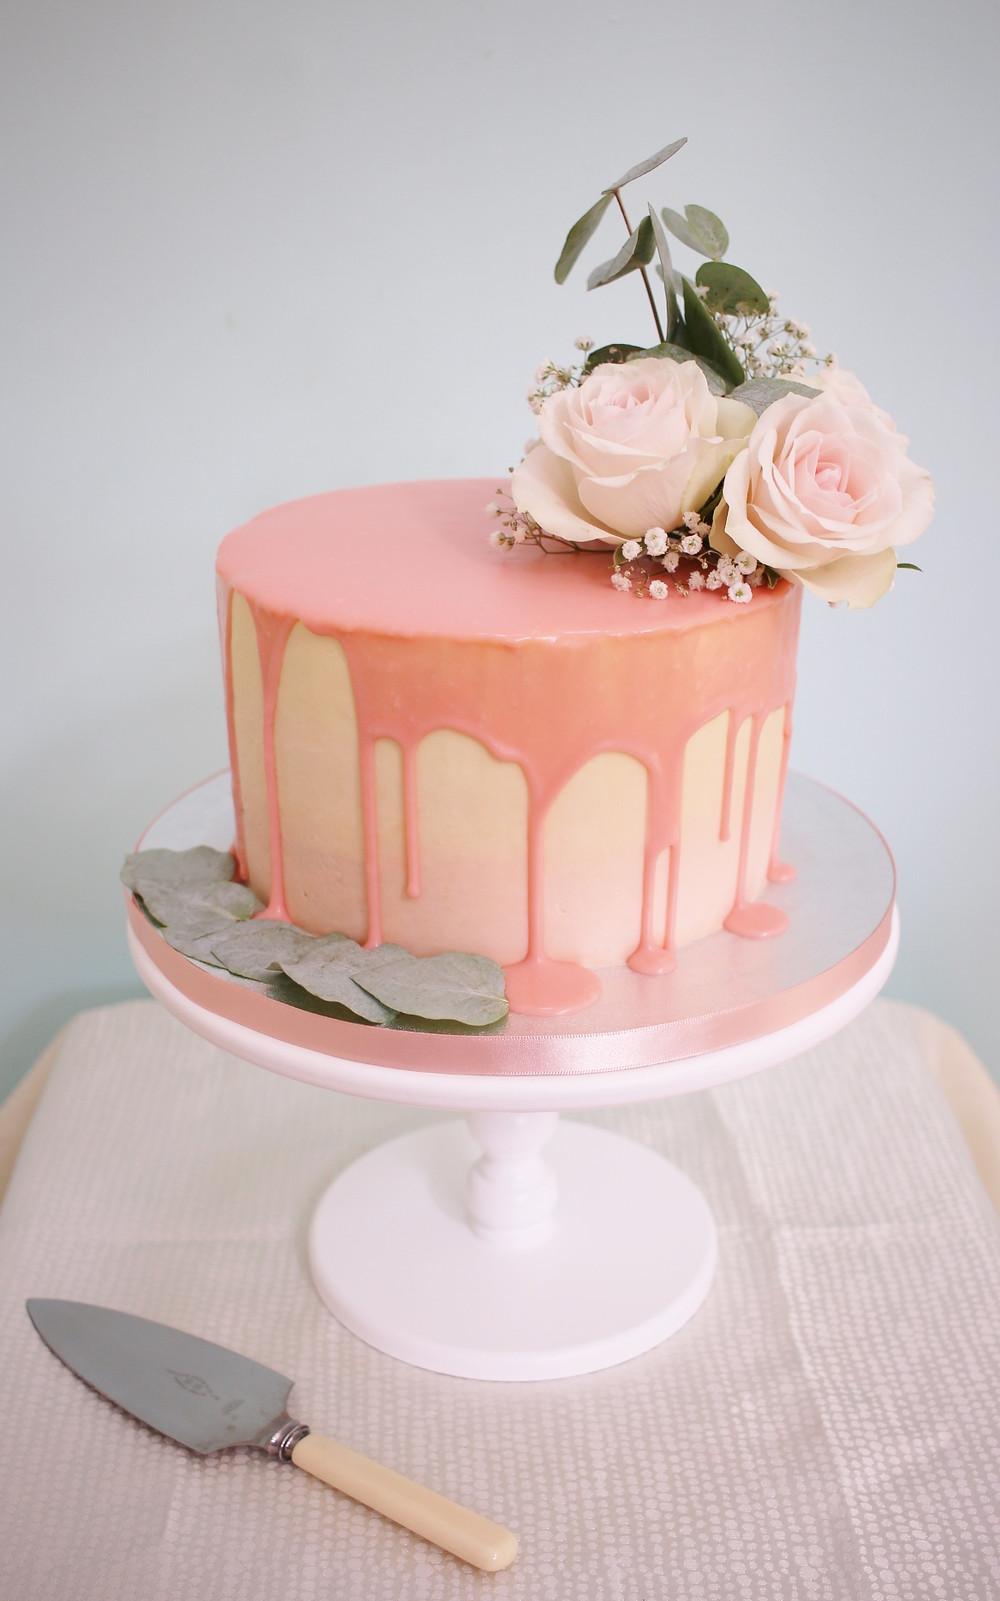 Gluten-free single tier wedding cake in buttercream